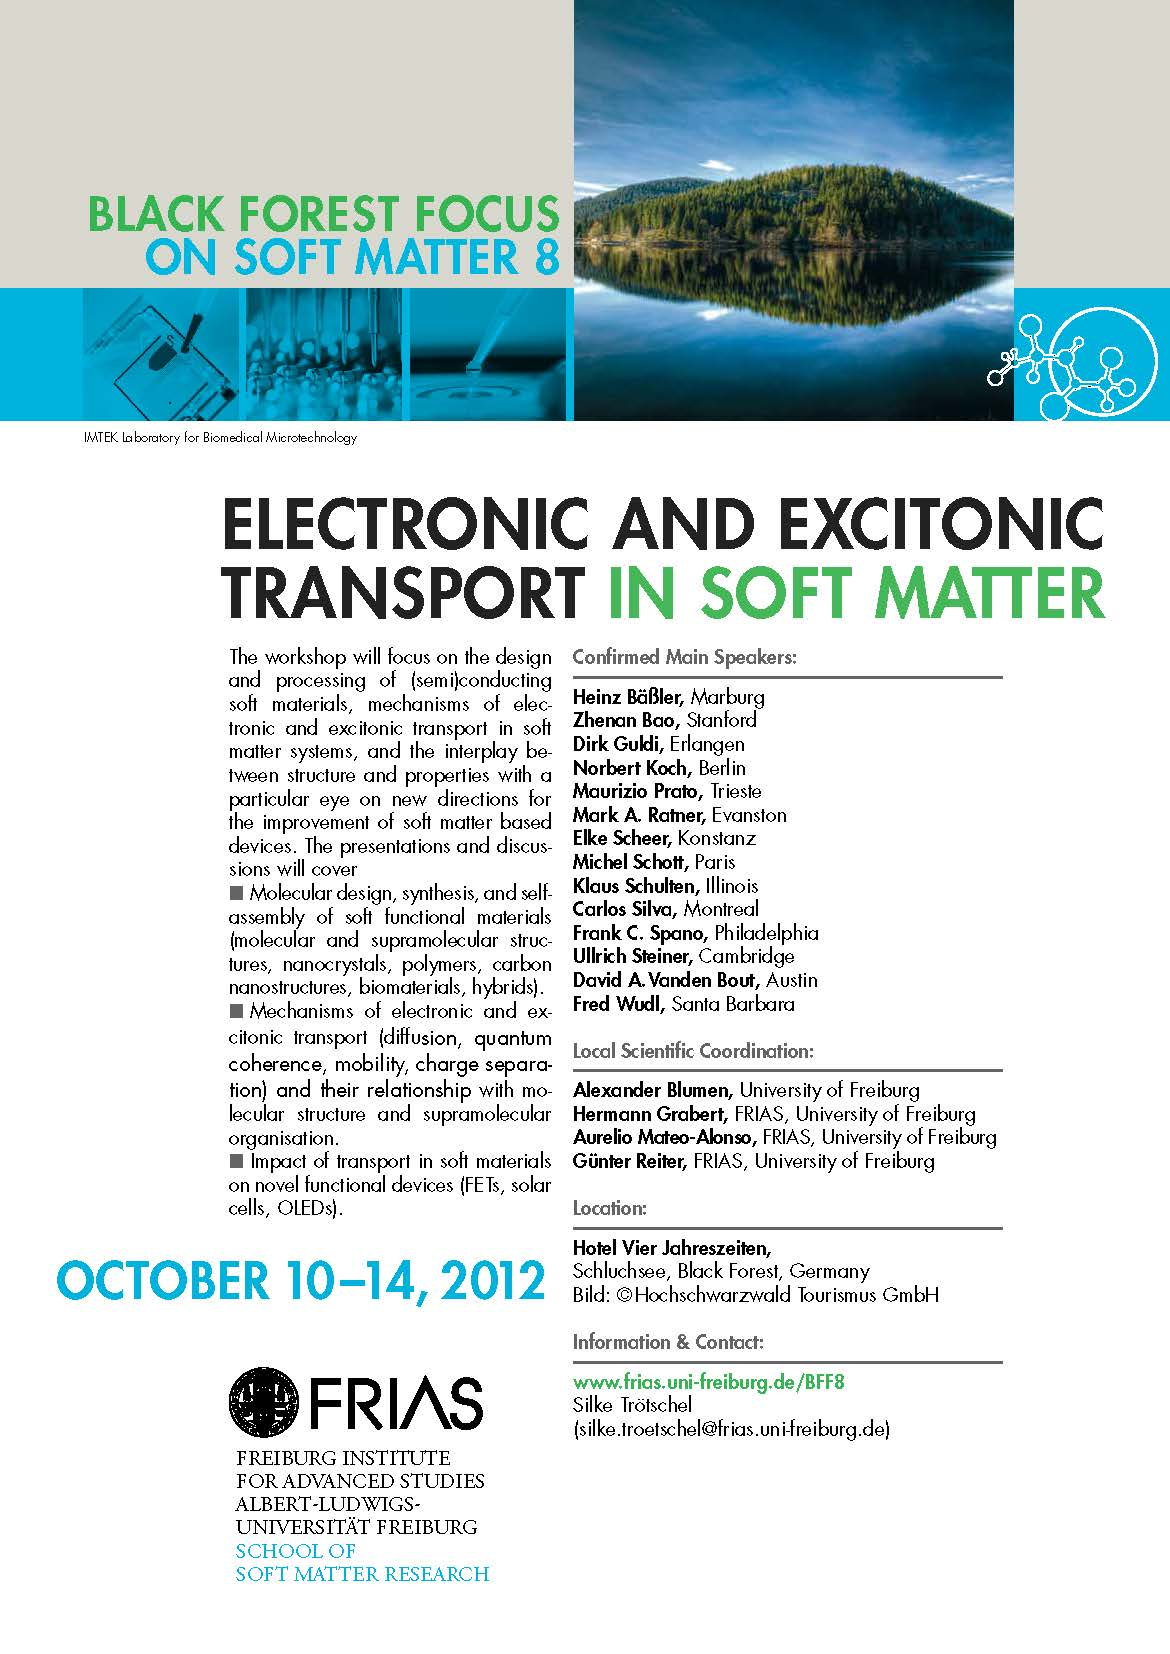 """8. Black Forest Focus zum Thema """"Electronic and Excitonic Transport in Soft Matter"""" erfolgreich beendet"""